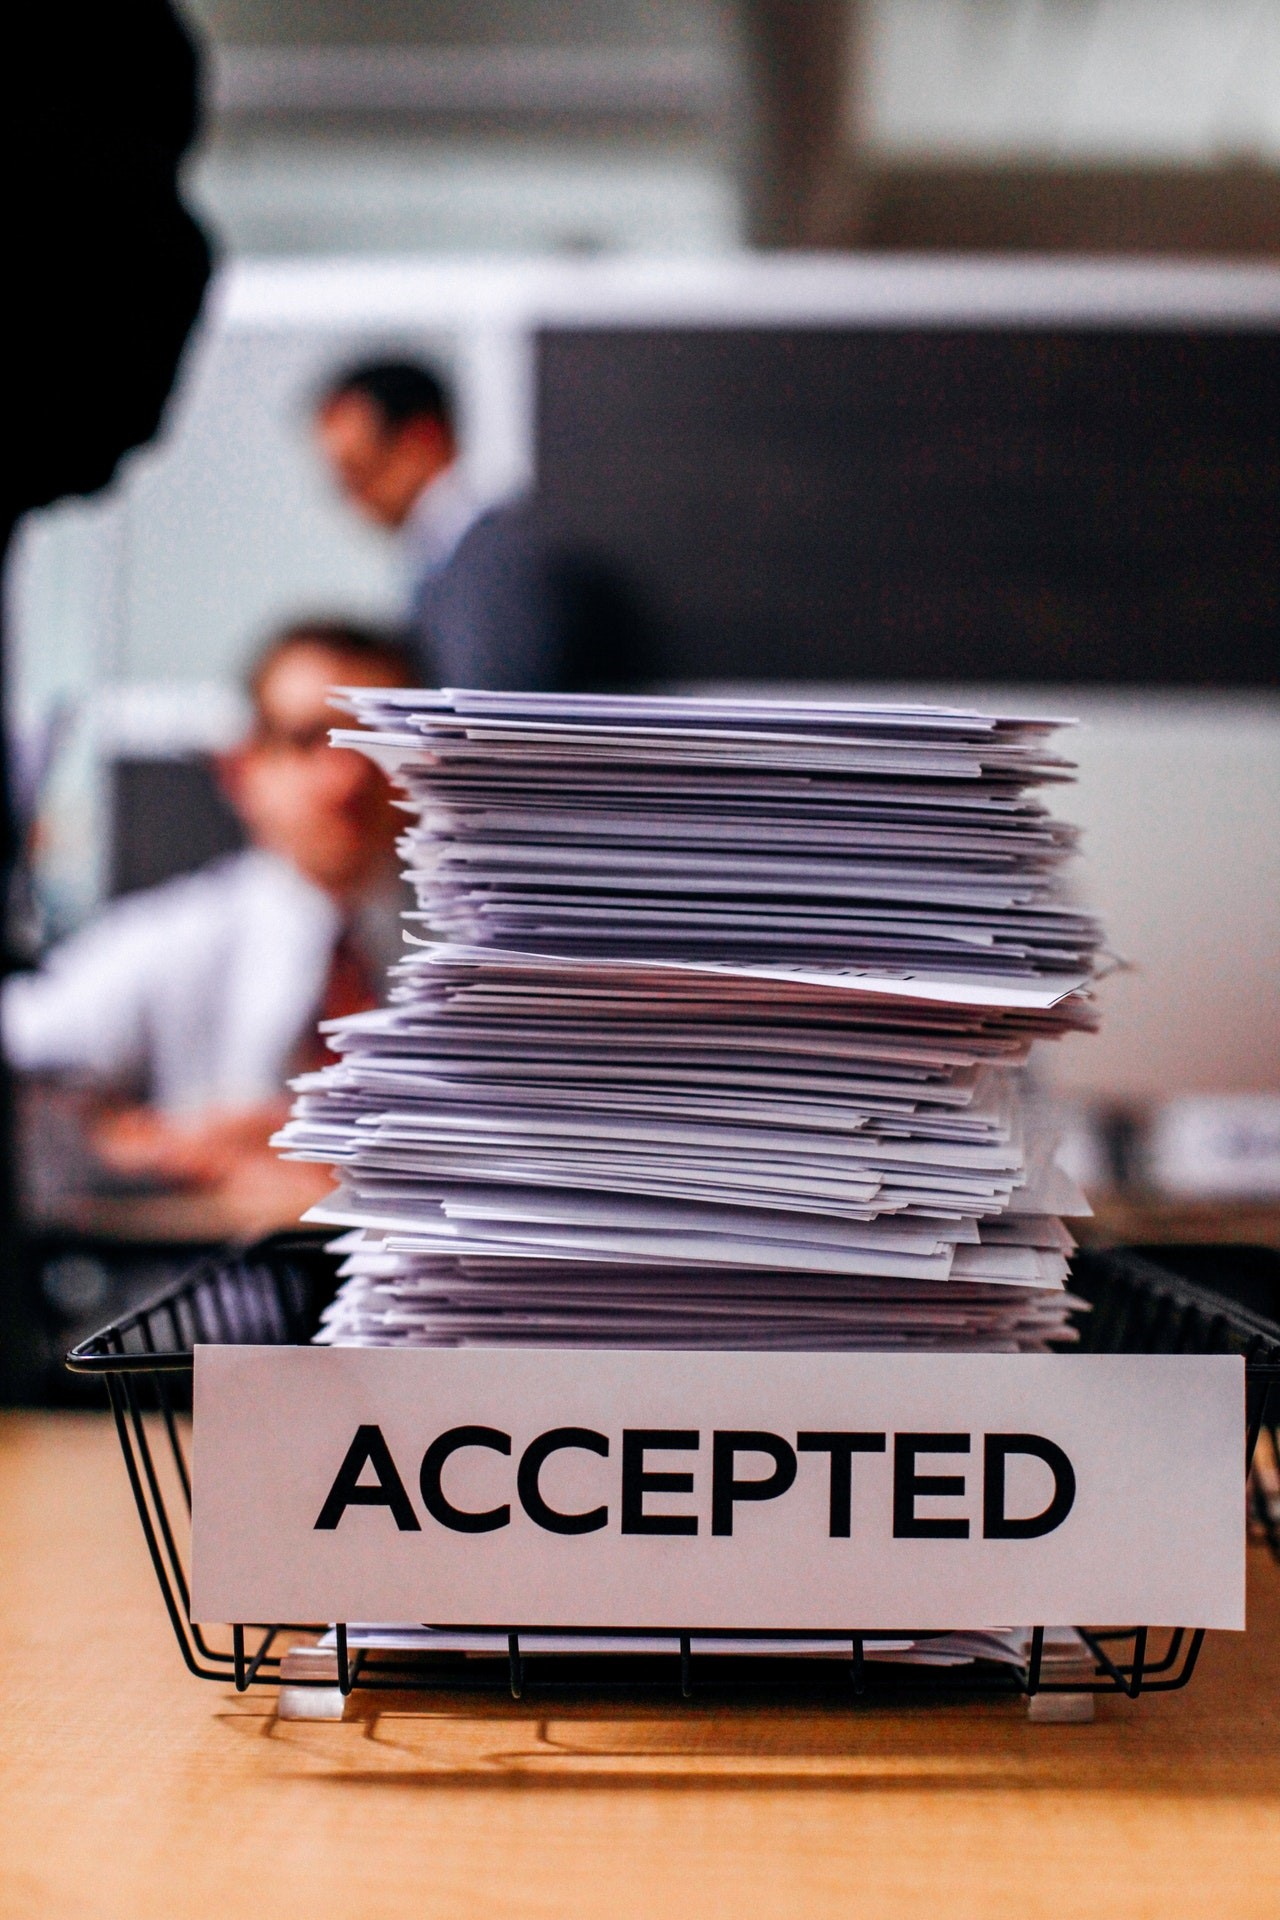 business document software - documents piled up on an office table